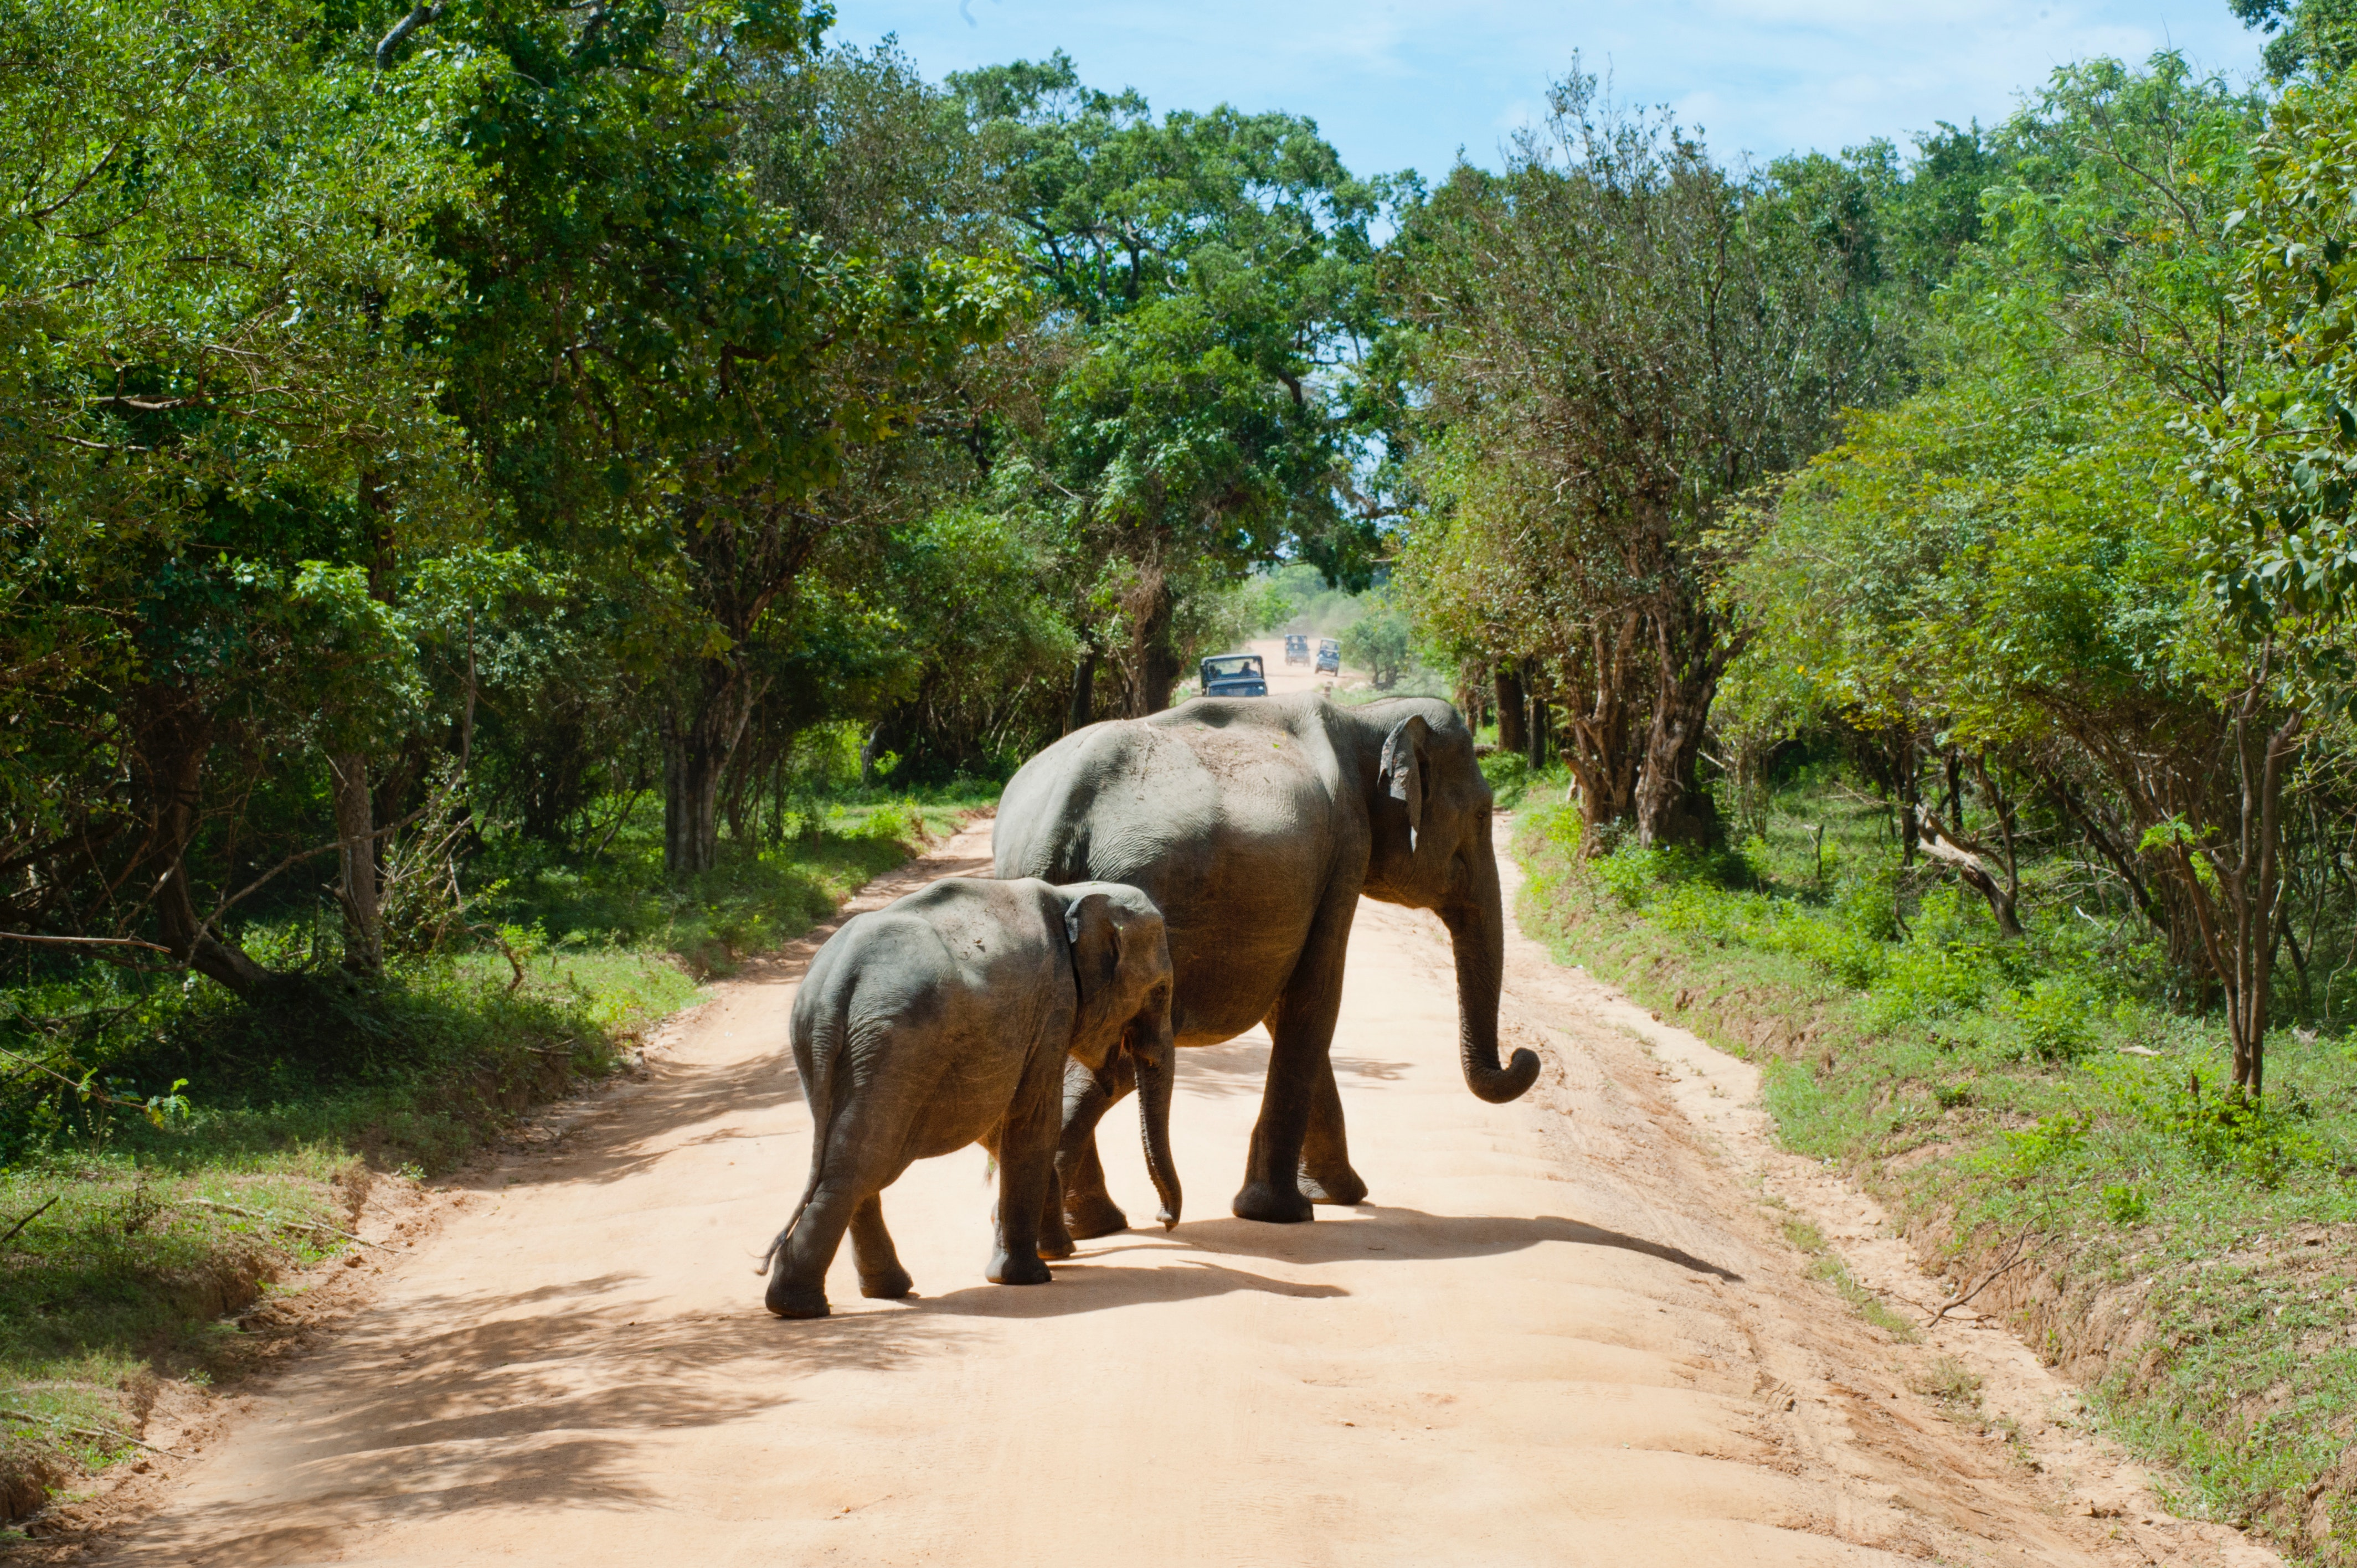 Elephant Walking, Agriculture, Woods, Wild, Tropical, HQ Photo